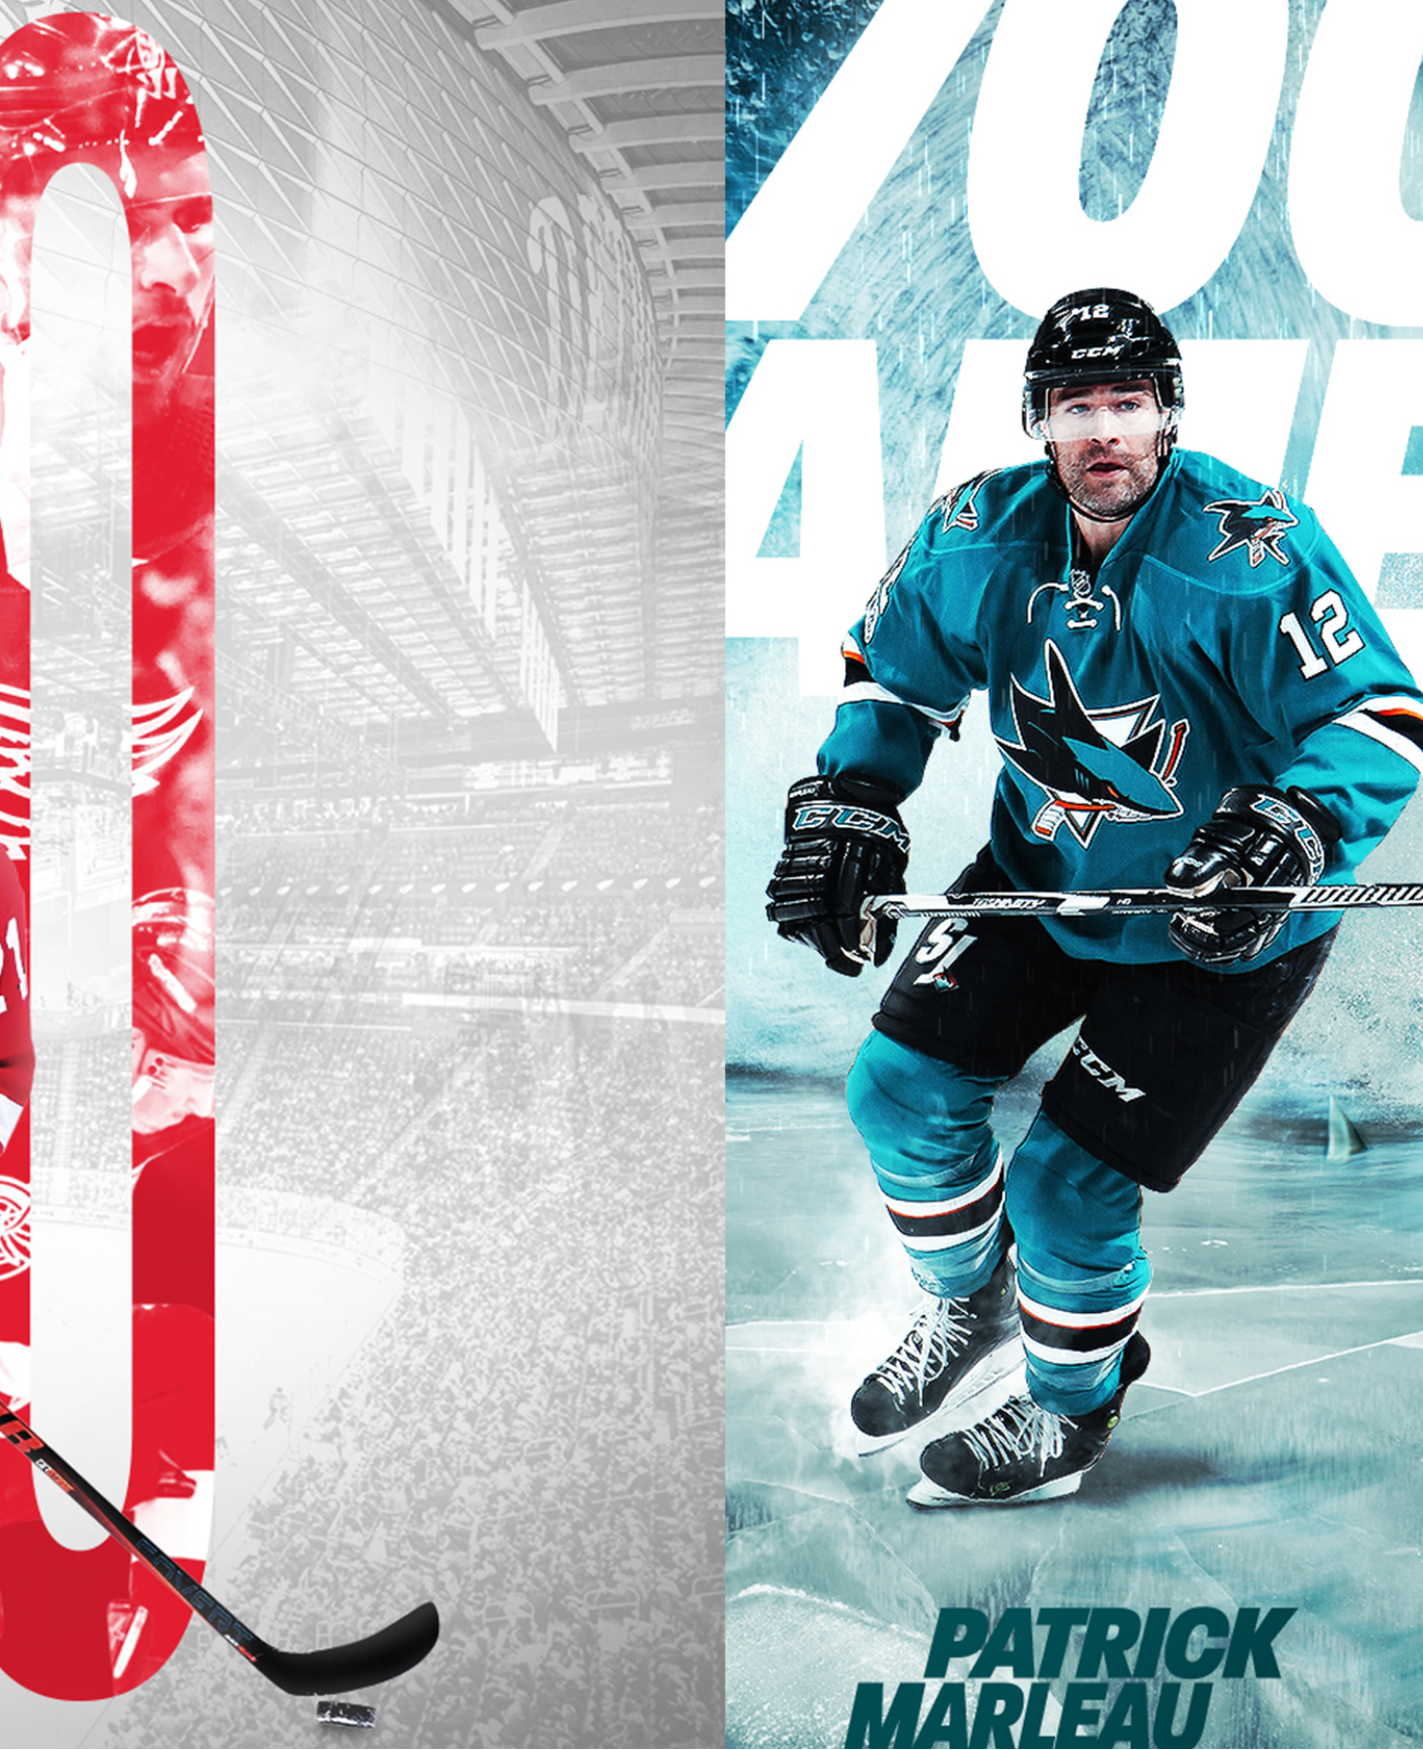 An image showing Dylan Larkin of the Detroit Red Wings with the number 100 behind him. On the other half of the image it shows Patrick Marlau when he was apart of the San Jose Sharks.